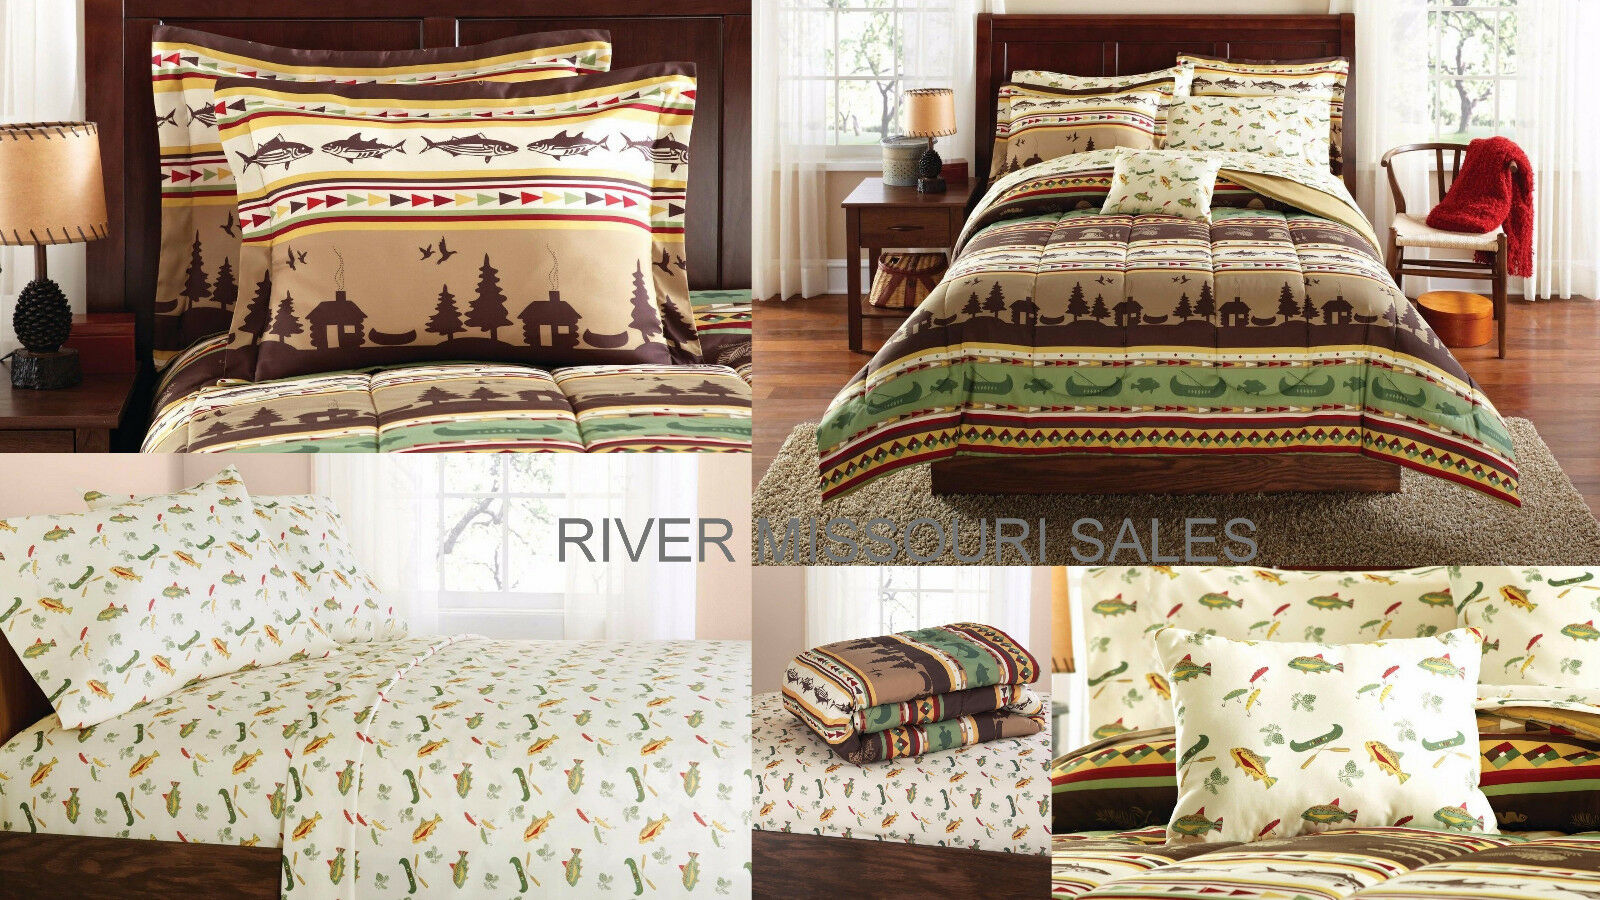 Fishing Cabin Lodge Lake 8 Piece Complete Bed In A Bag Comforter Sets,Choice-NEW